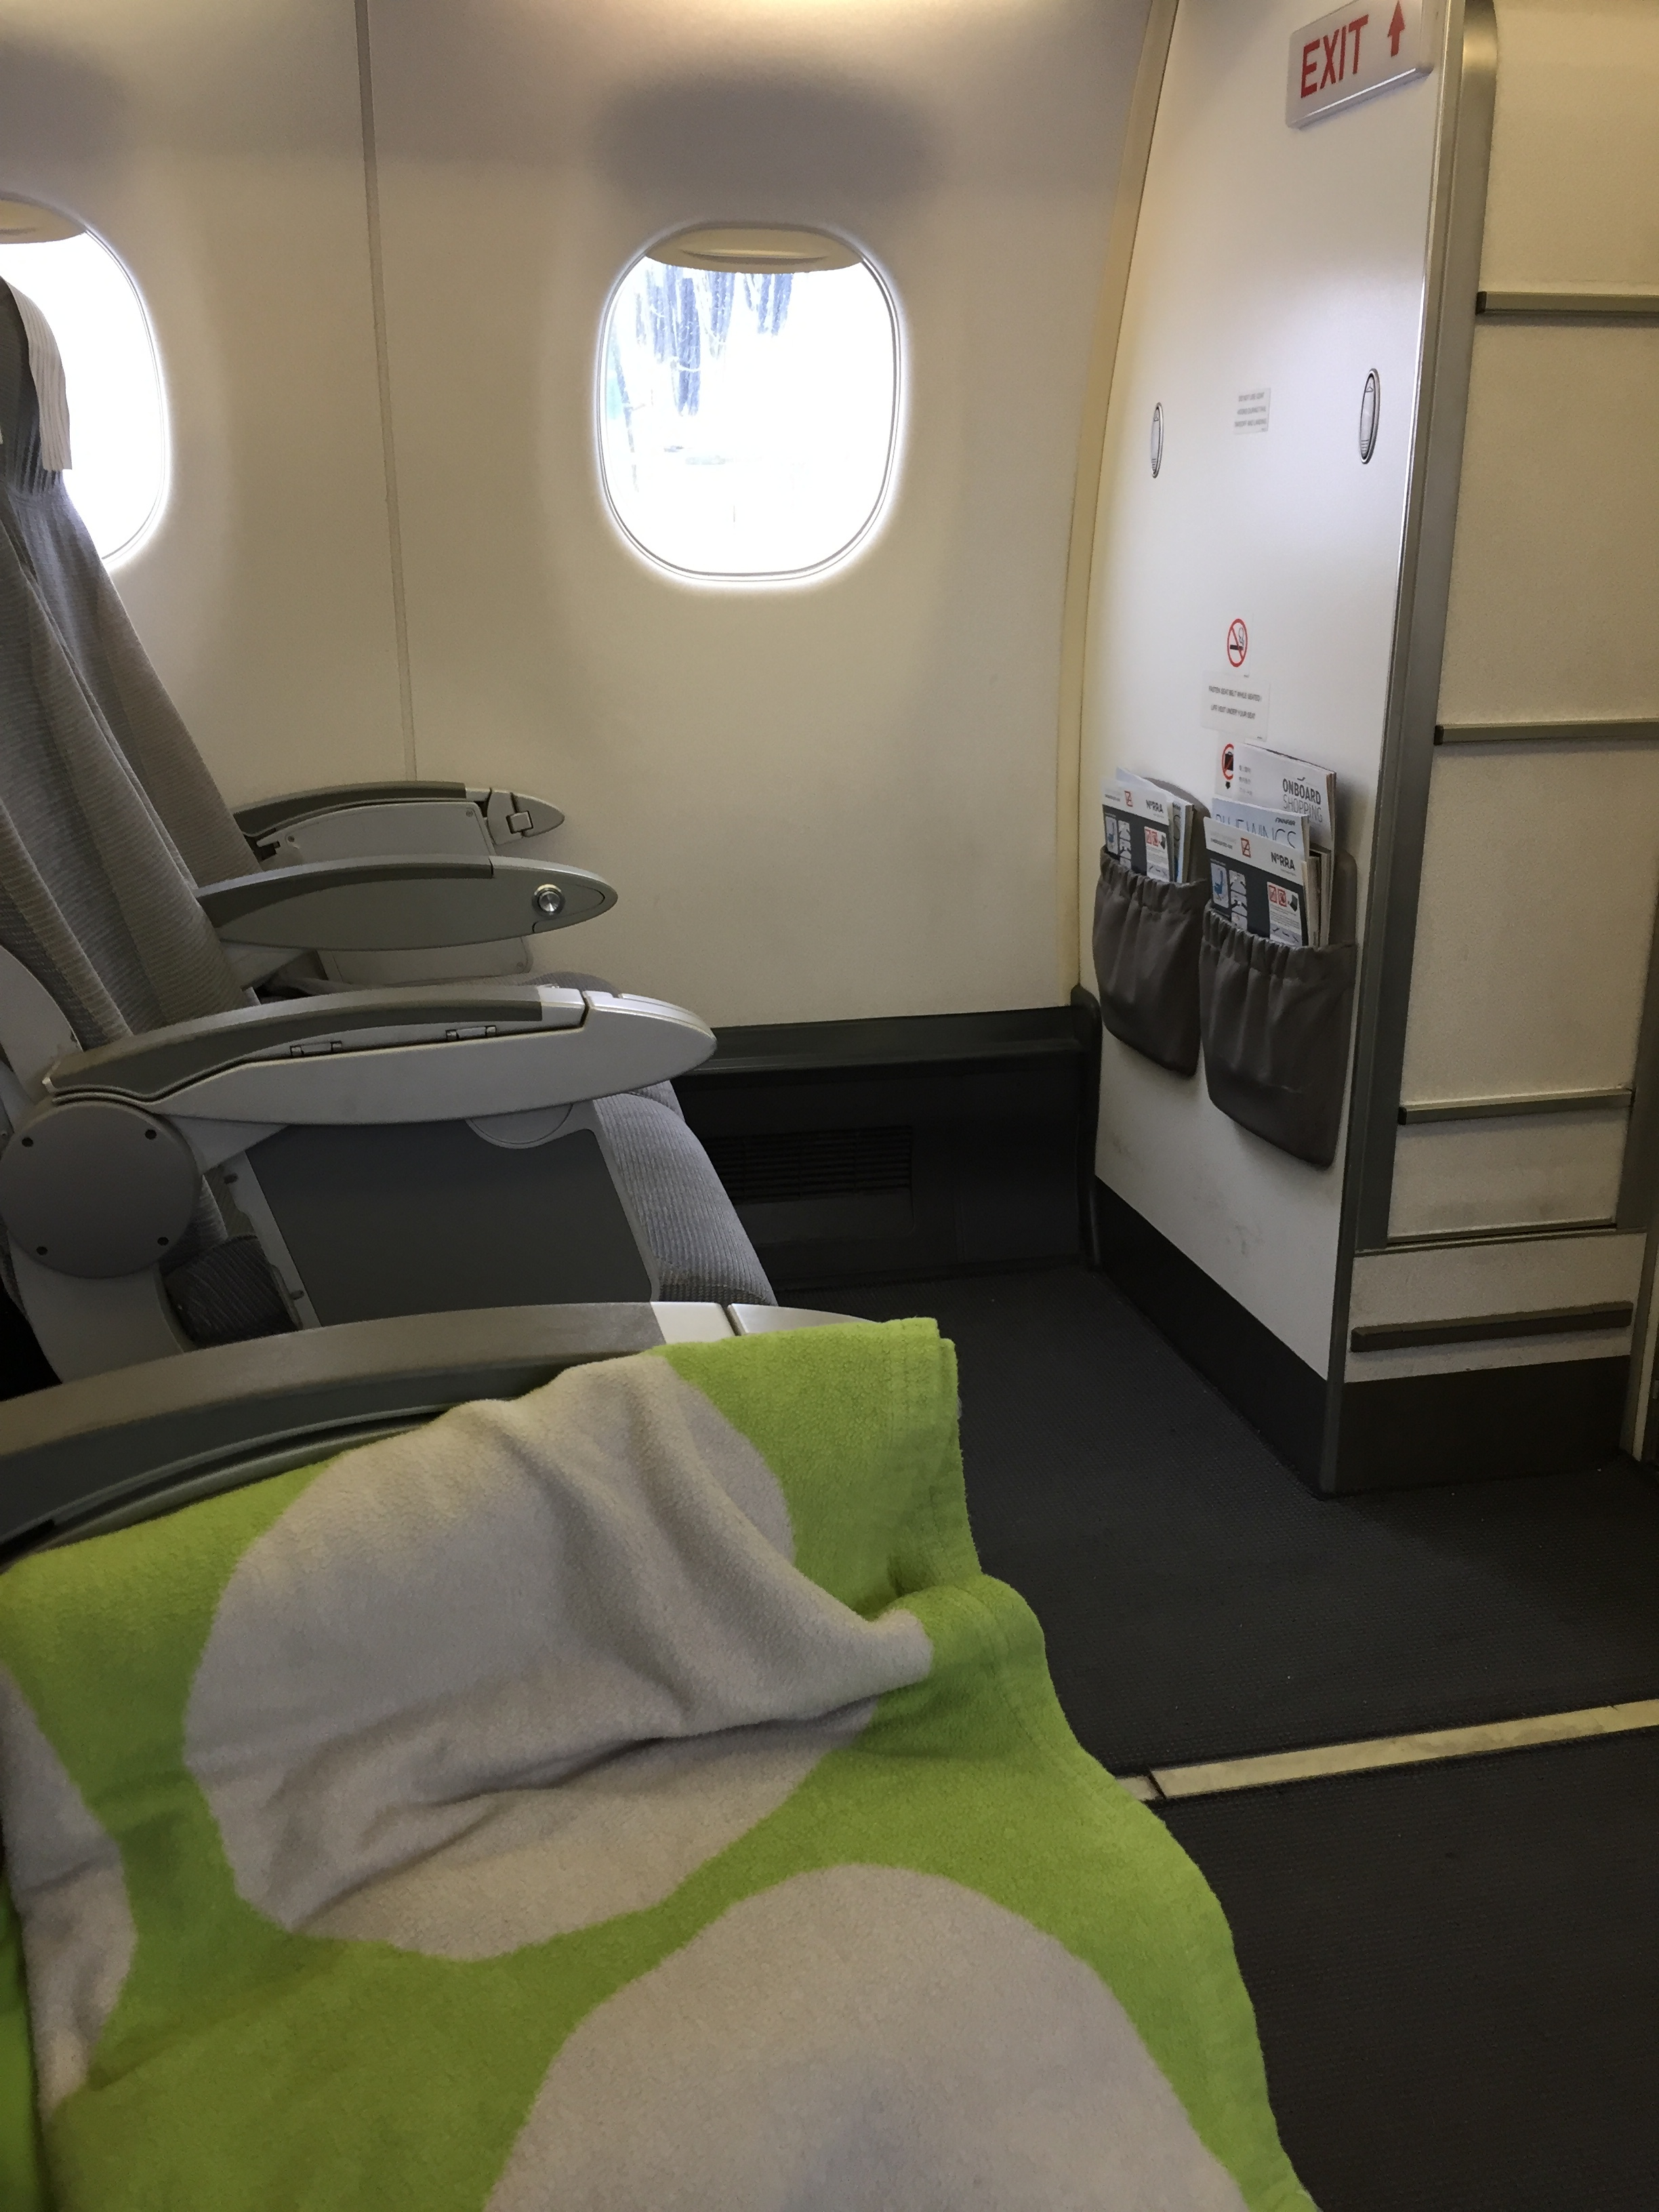 Finnair's colourful dotted blankets, same as on the A350